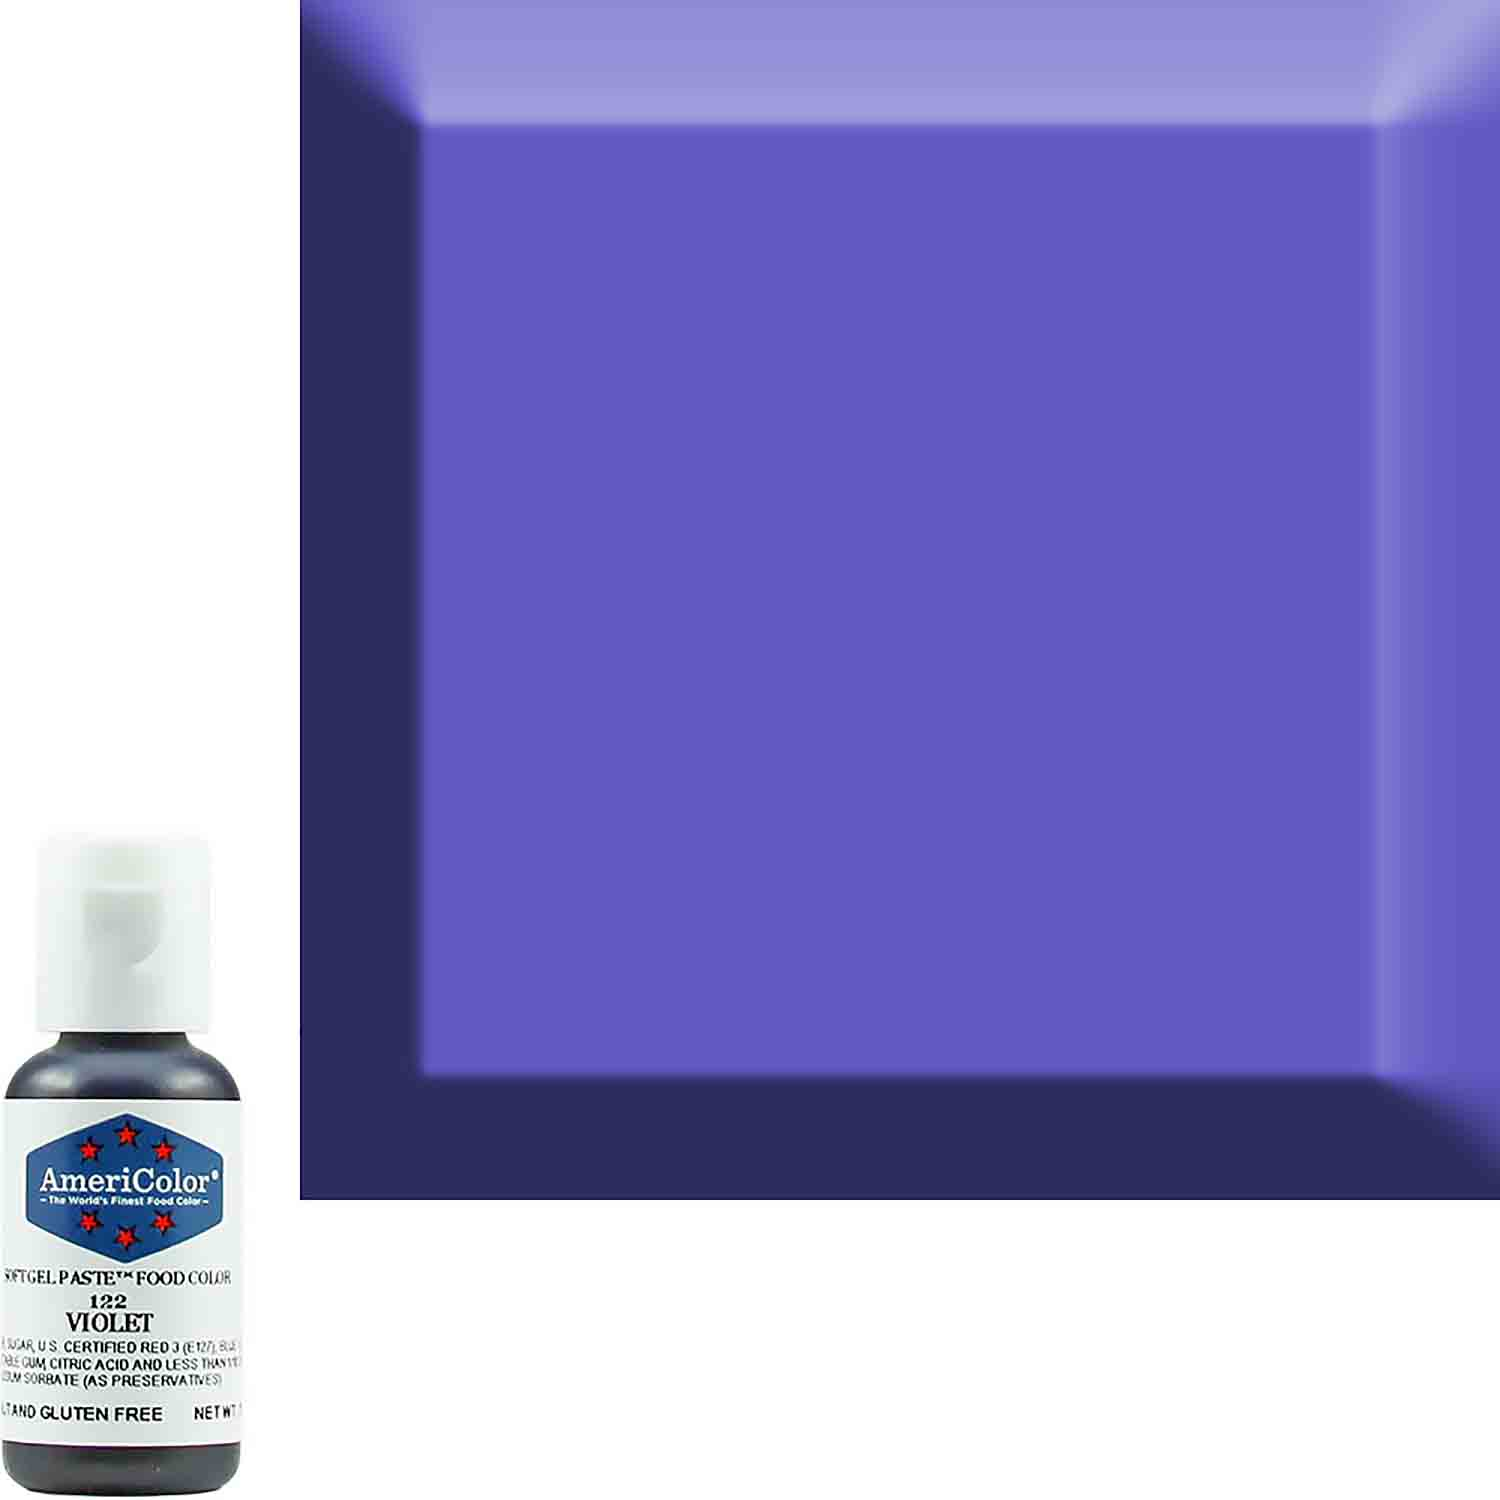 Violet Americolor® Soft Gel Paste Food Color (Old # 41-8022)